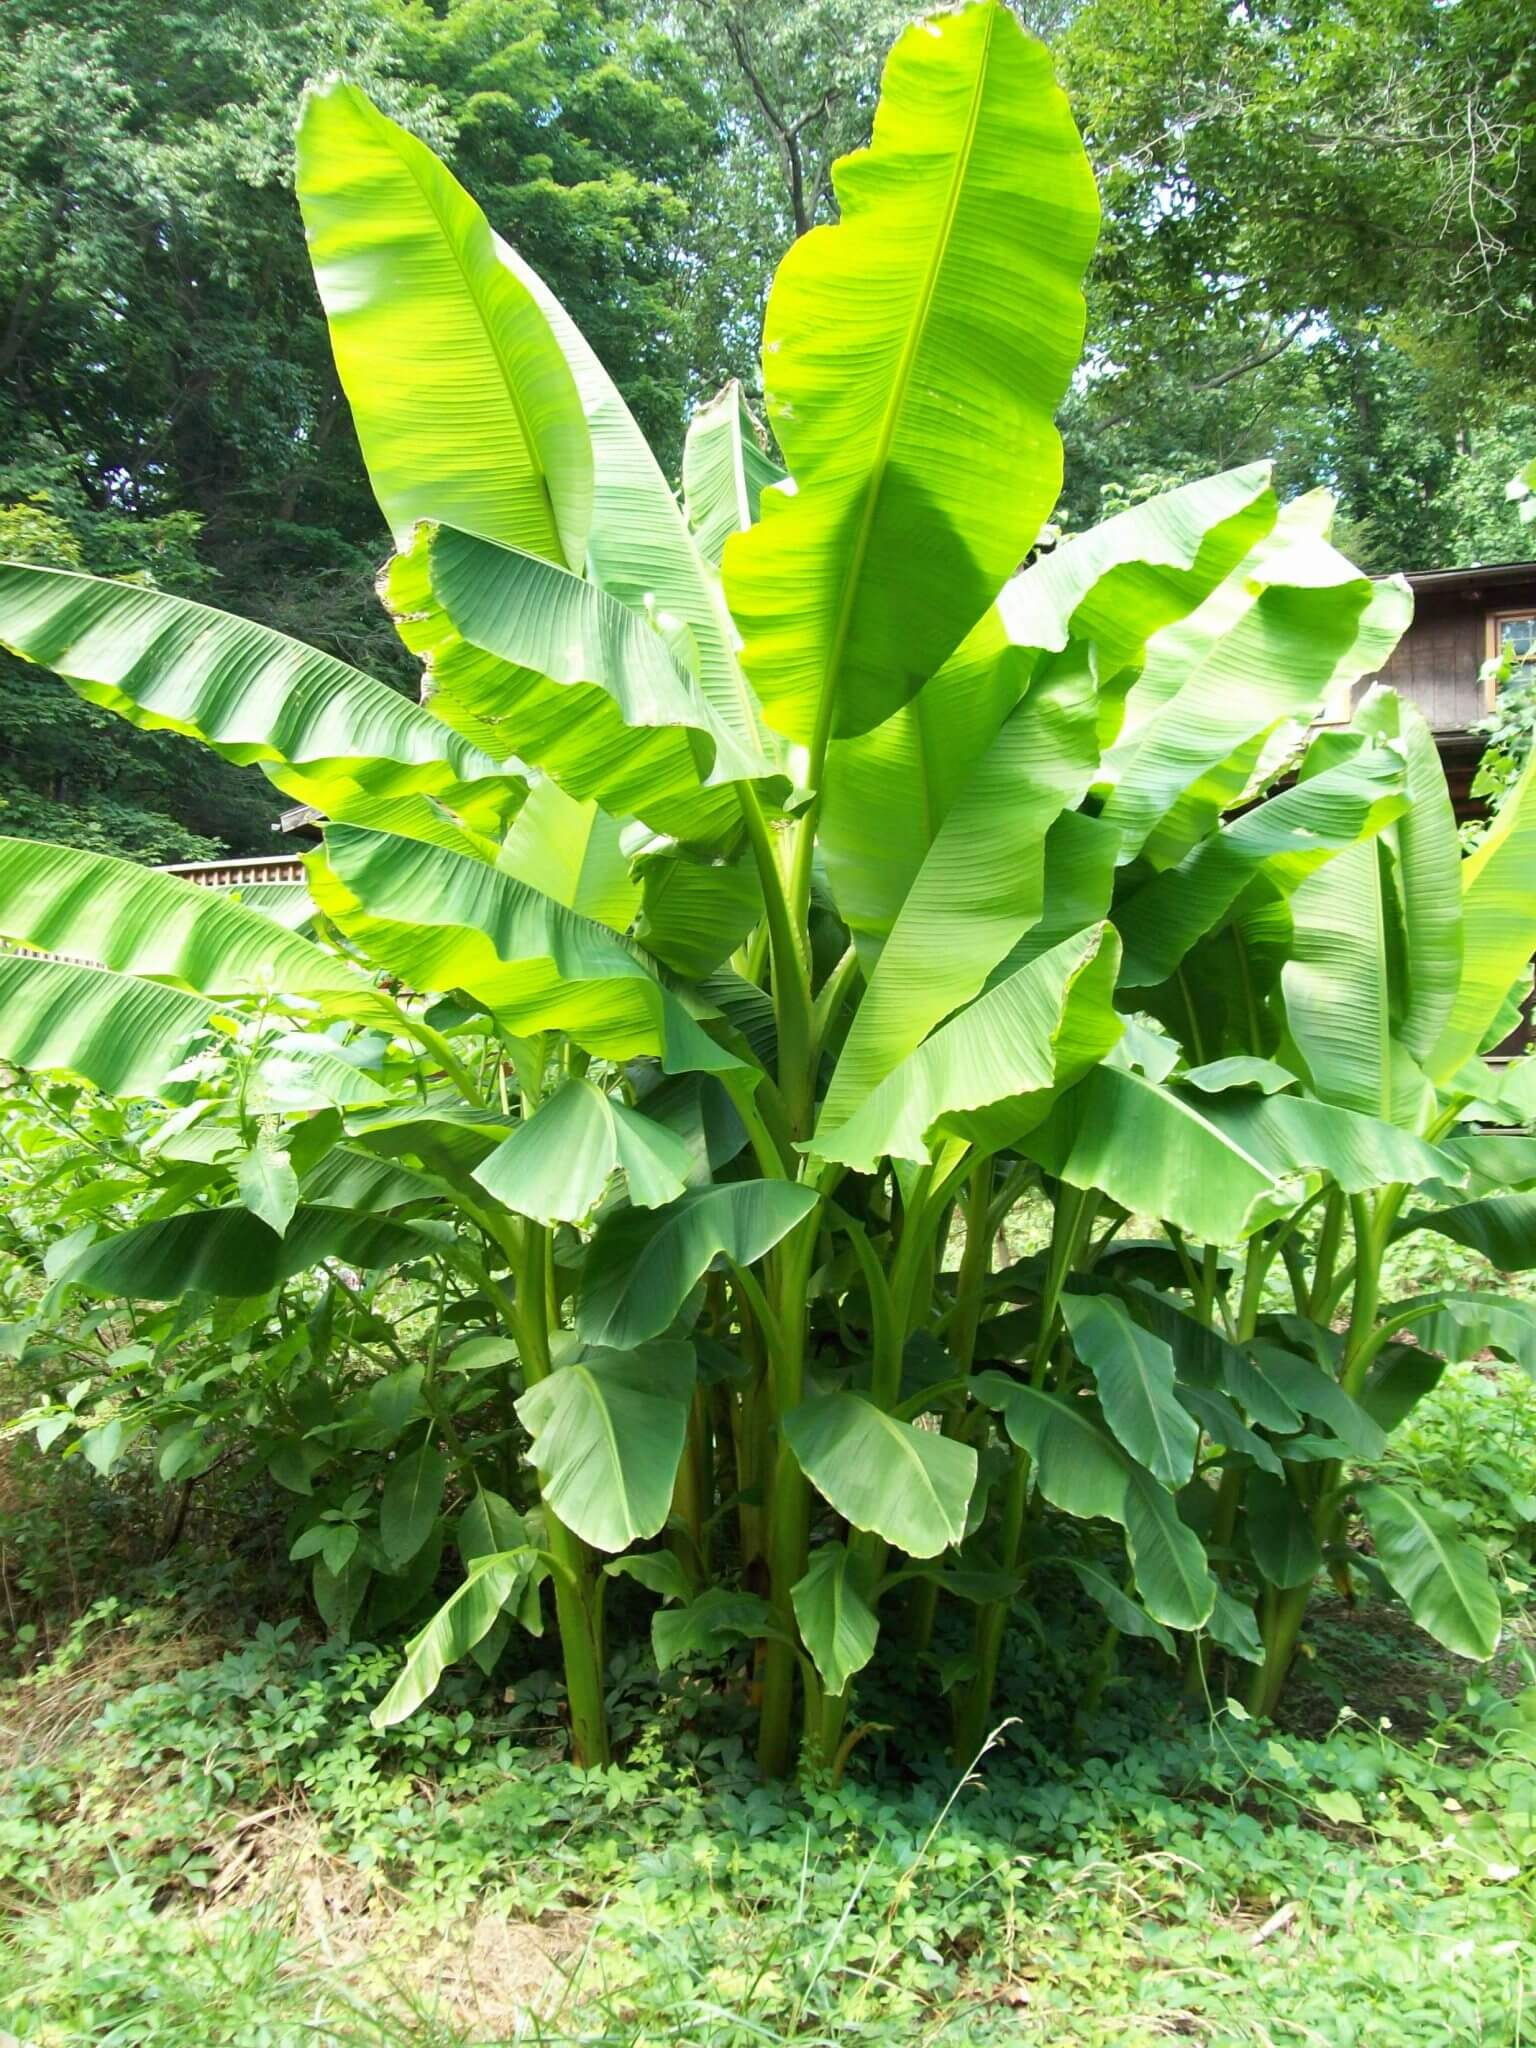 Musa basjoo, Japanese Banana growing in USDA Zone 5